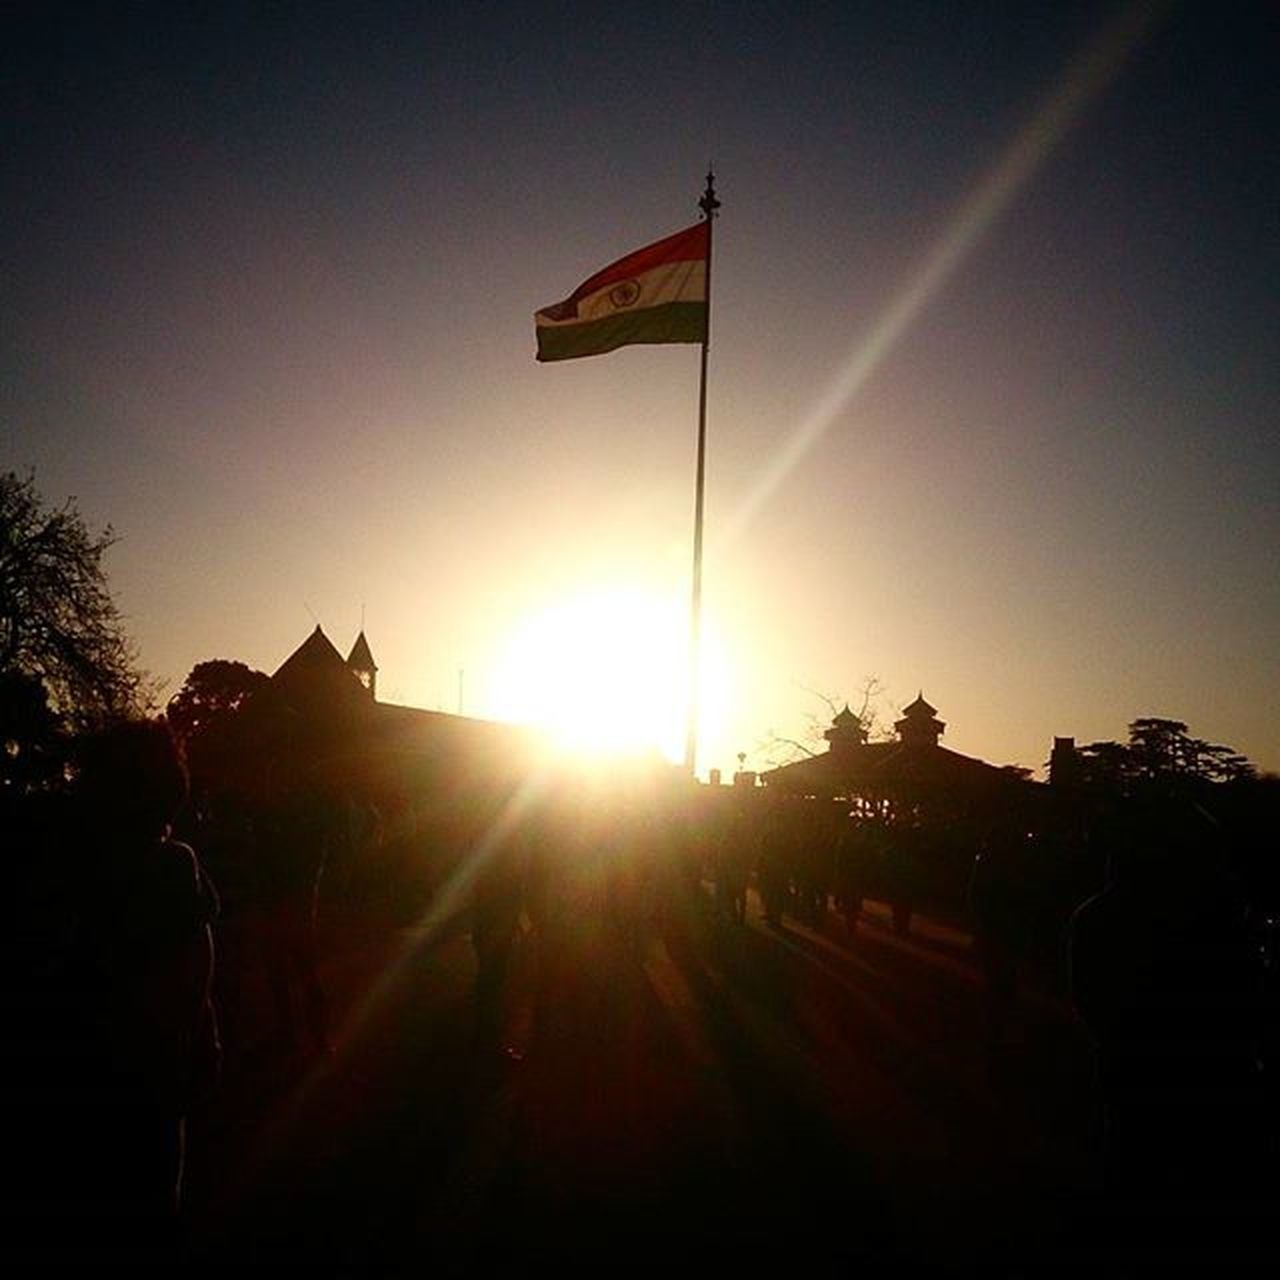 flag, patriotism, sunset, silhouette, outdoors, sky, tree, no people, day